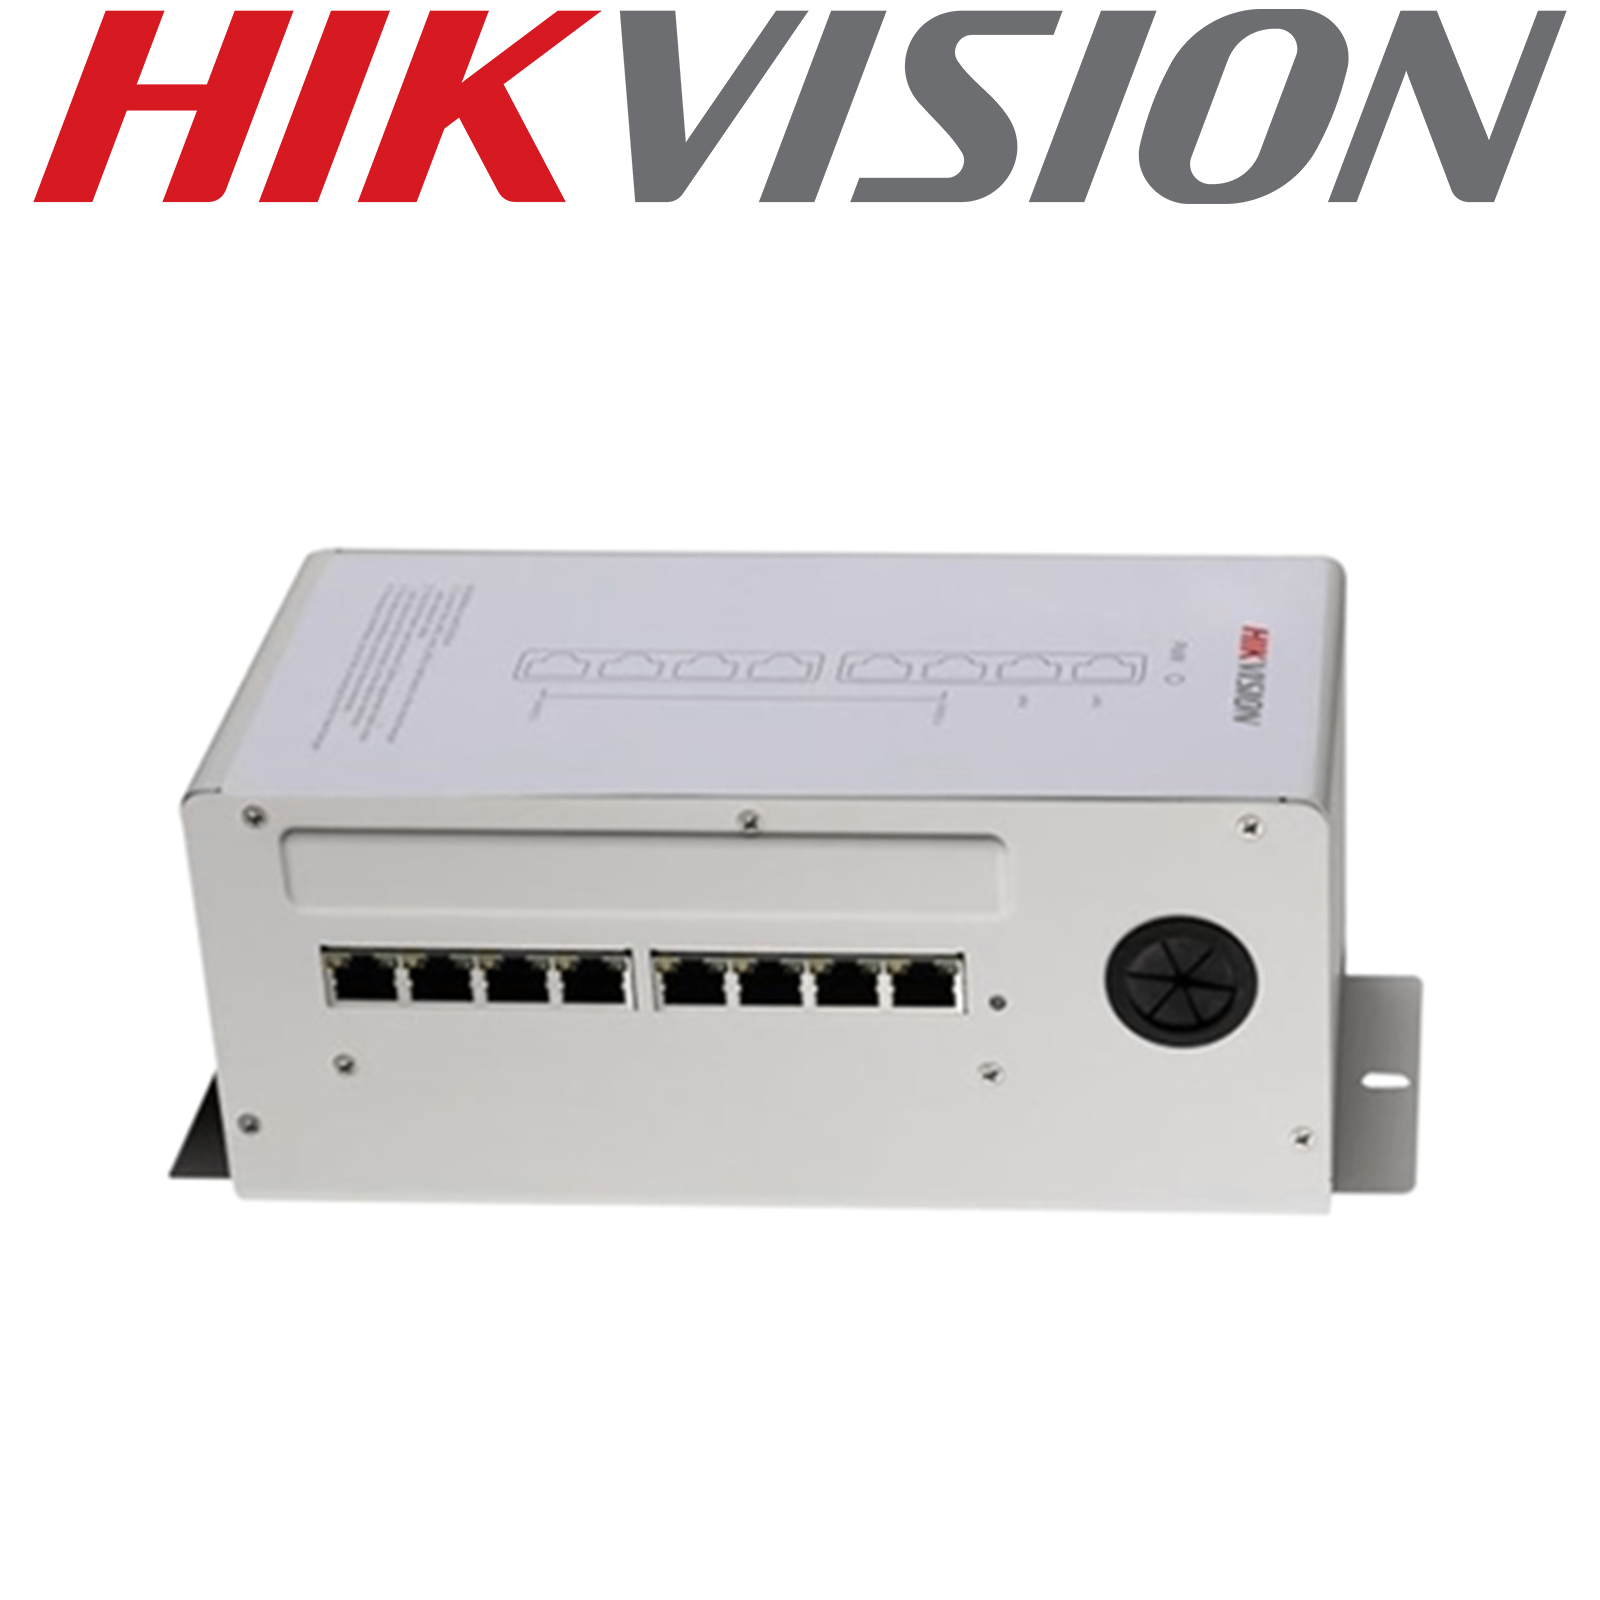 HIKVISION 6 POE PORT 8 RJ45 VIDEO AUDIO DESKTOP POWER DISTRIBUTOR DS-KAD606 GRADED ITEM